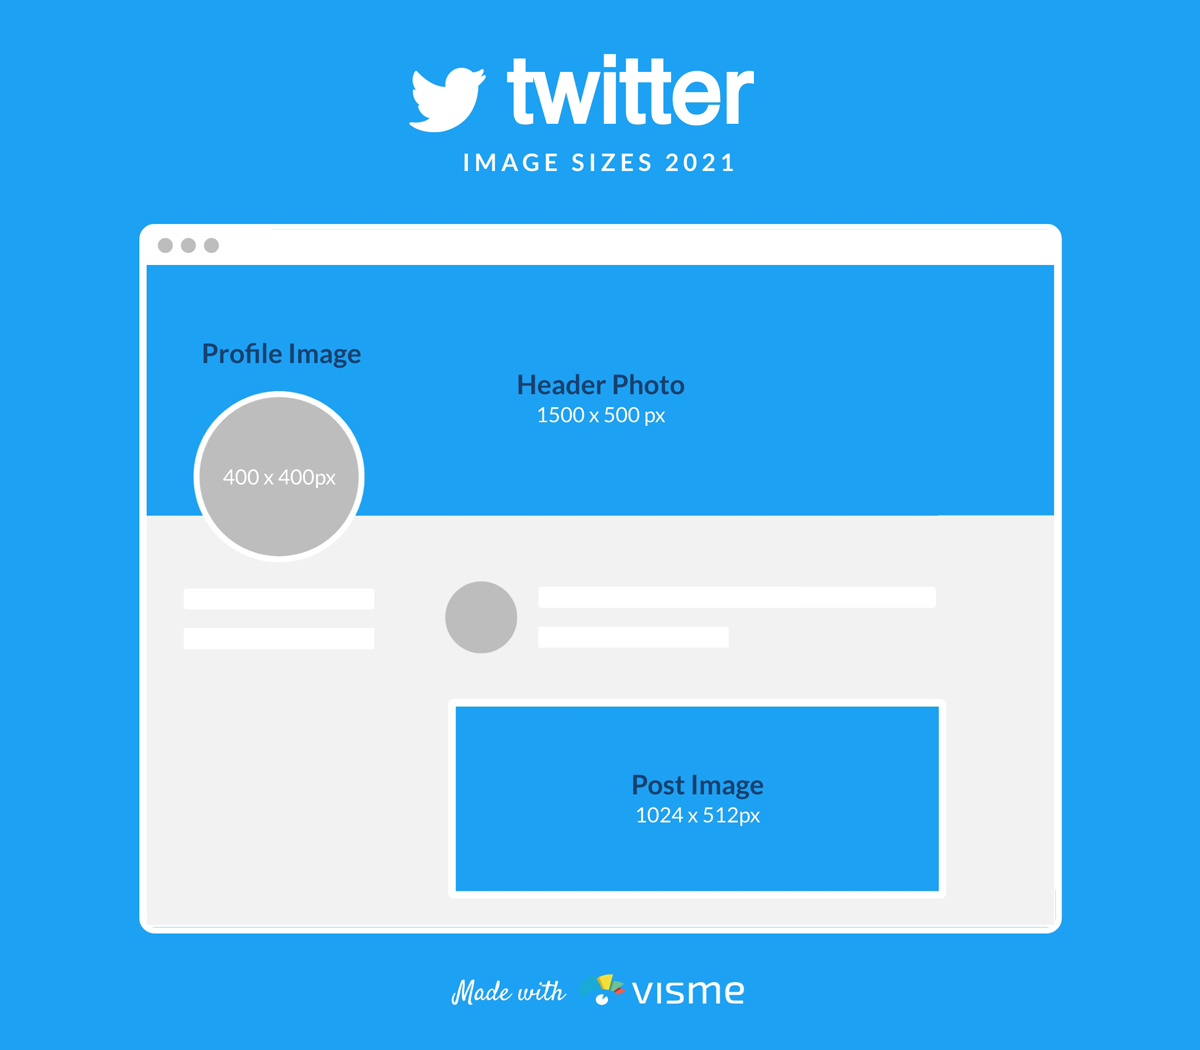 A mockup of Twitter's image sizes.